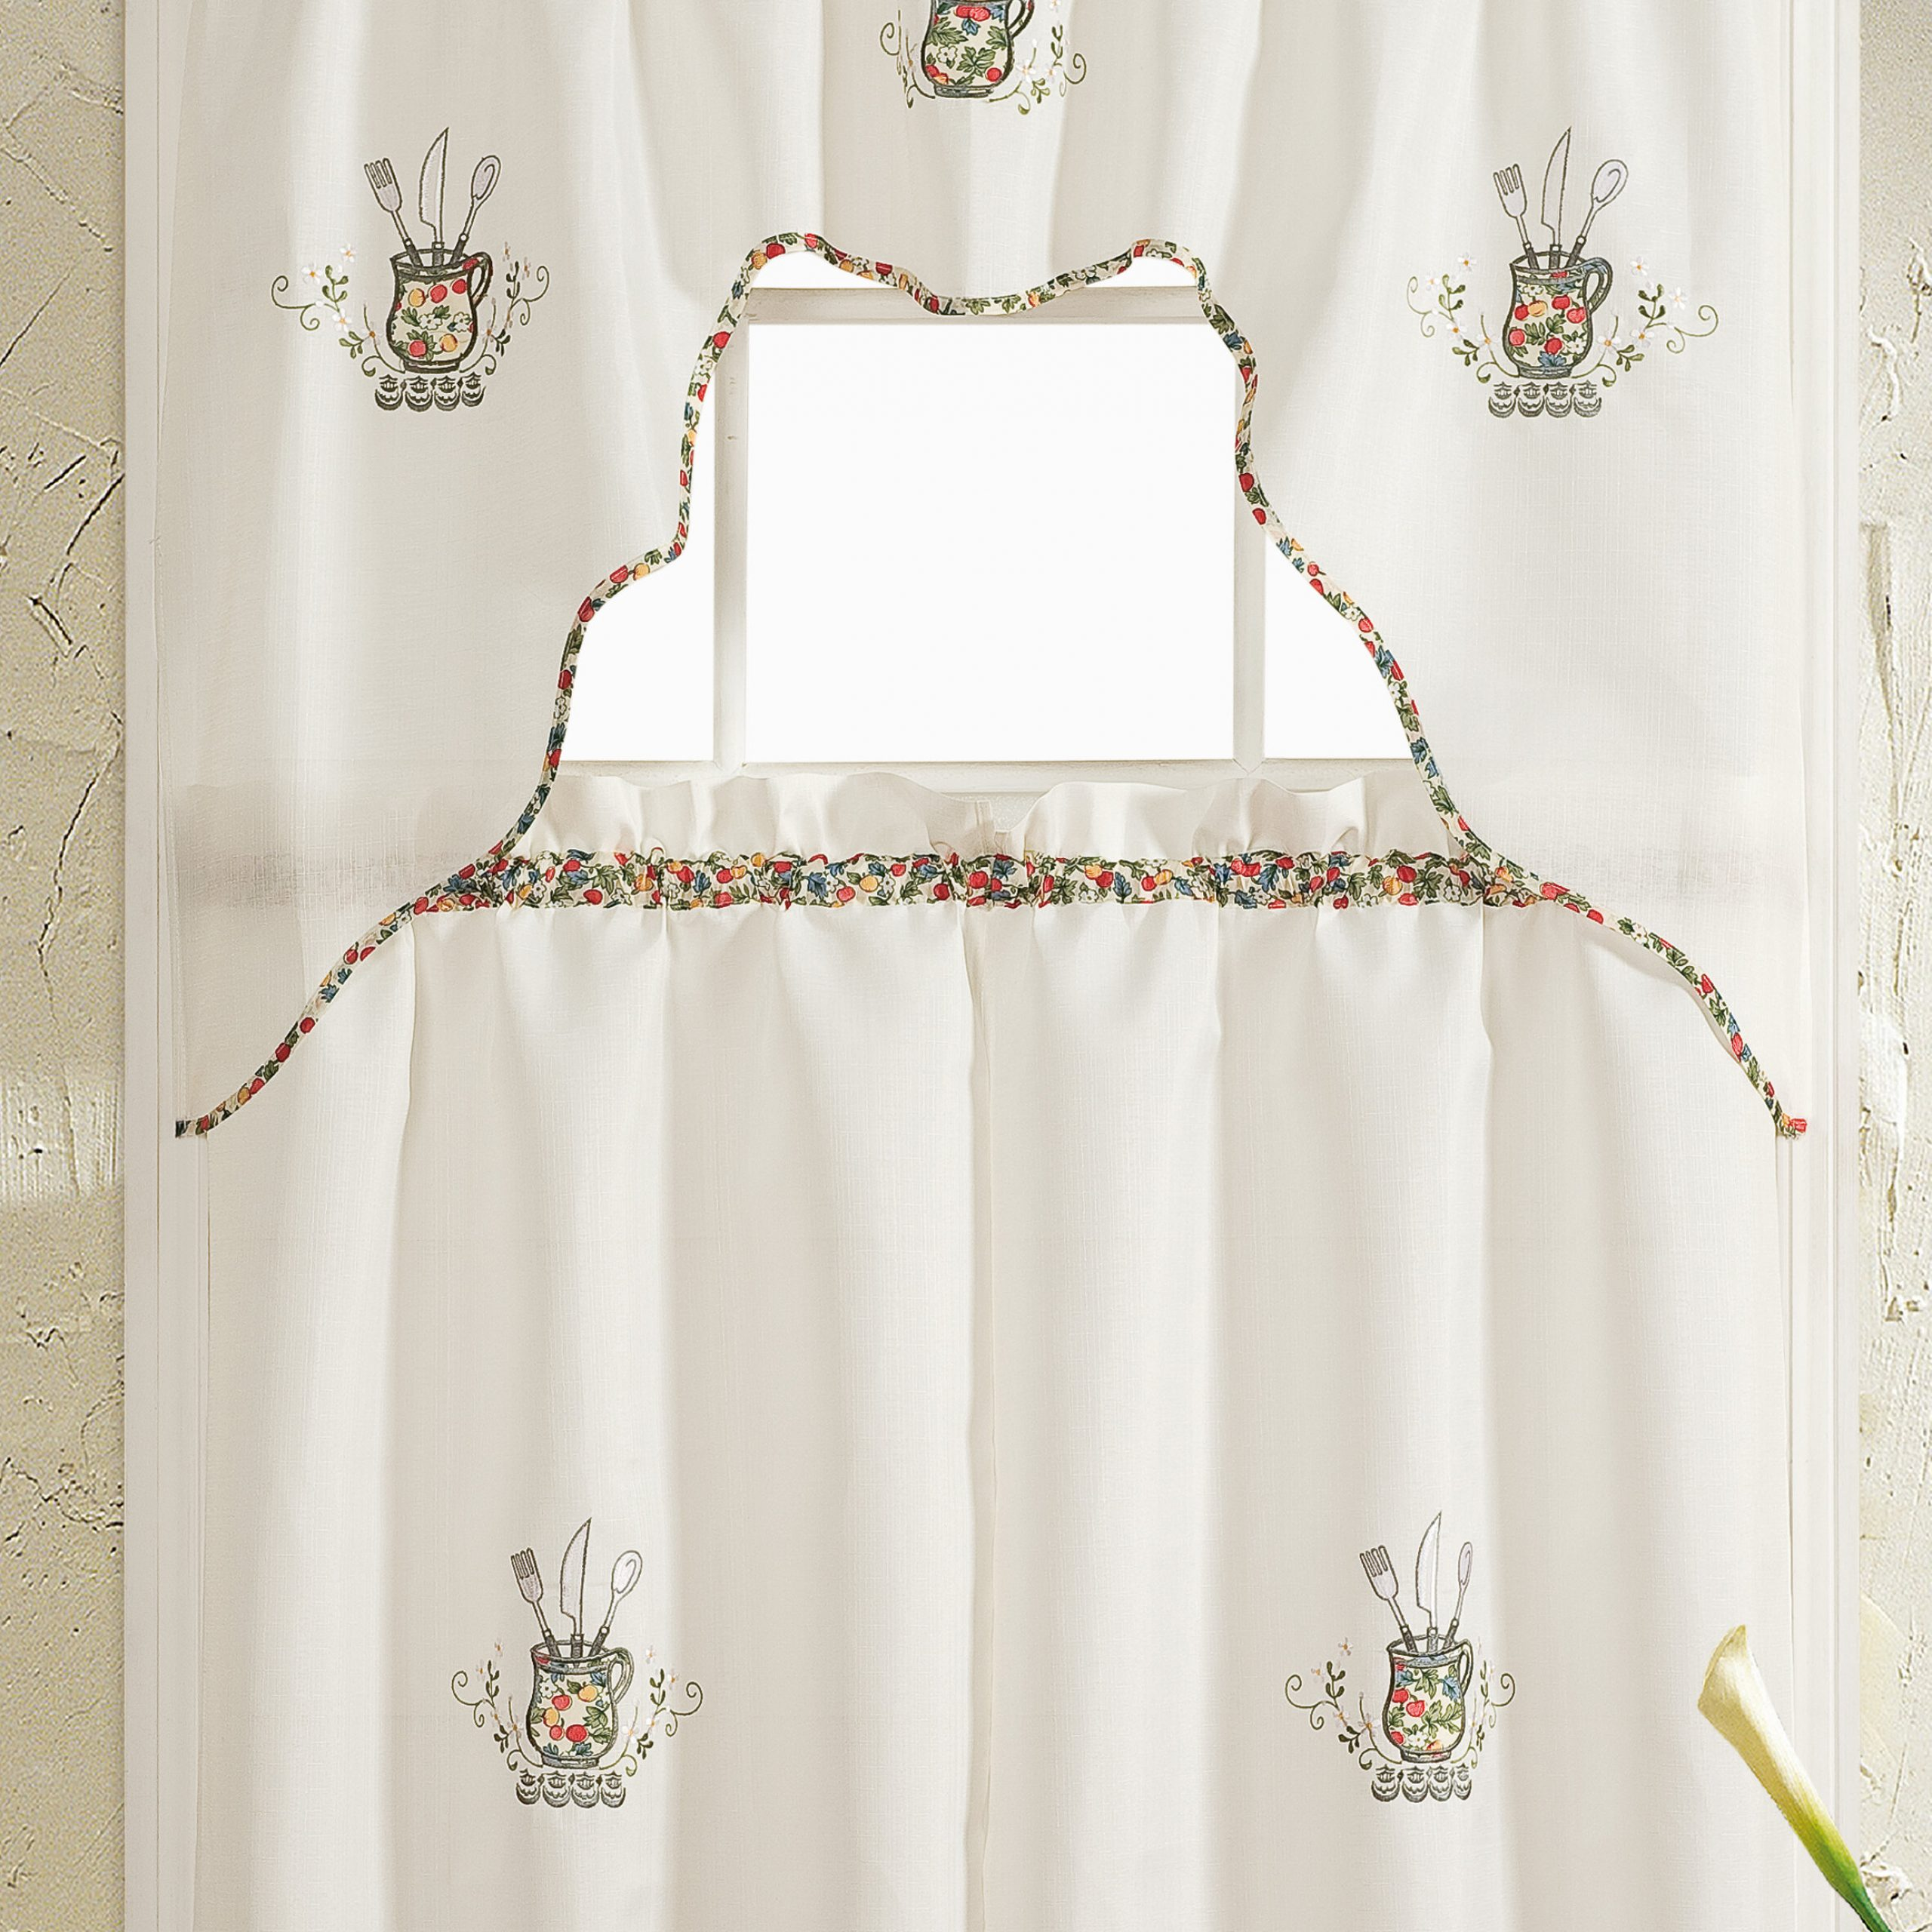 August Grove Hartlepool Silver Embroidered Kitchen Curtain Inside Abby Embroidered 5 Piece Curtain Tier And Swag Sets (Image 4 of 20)